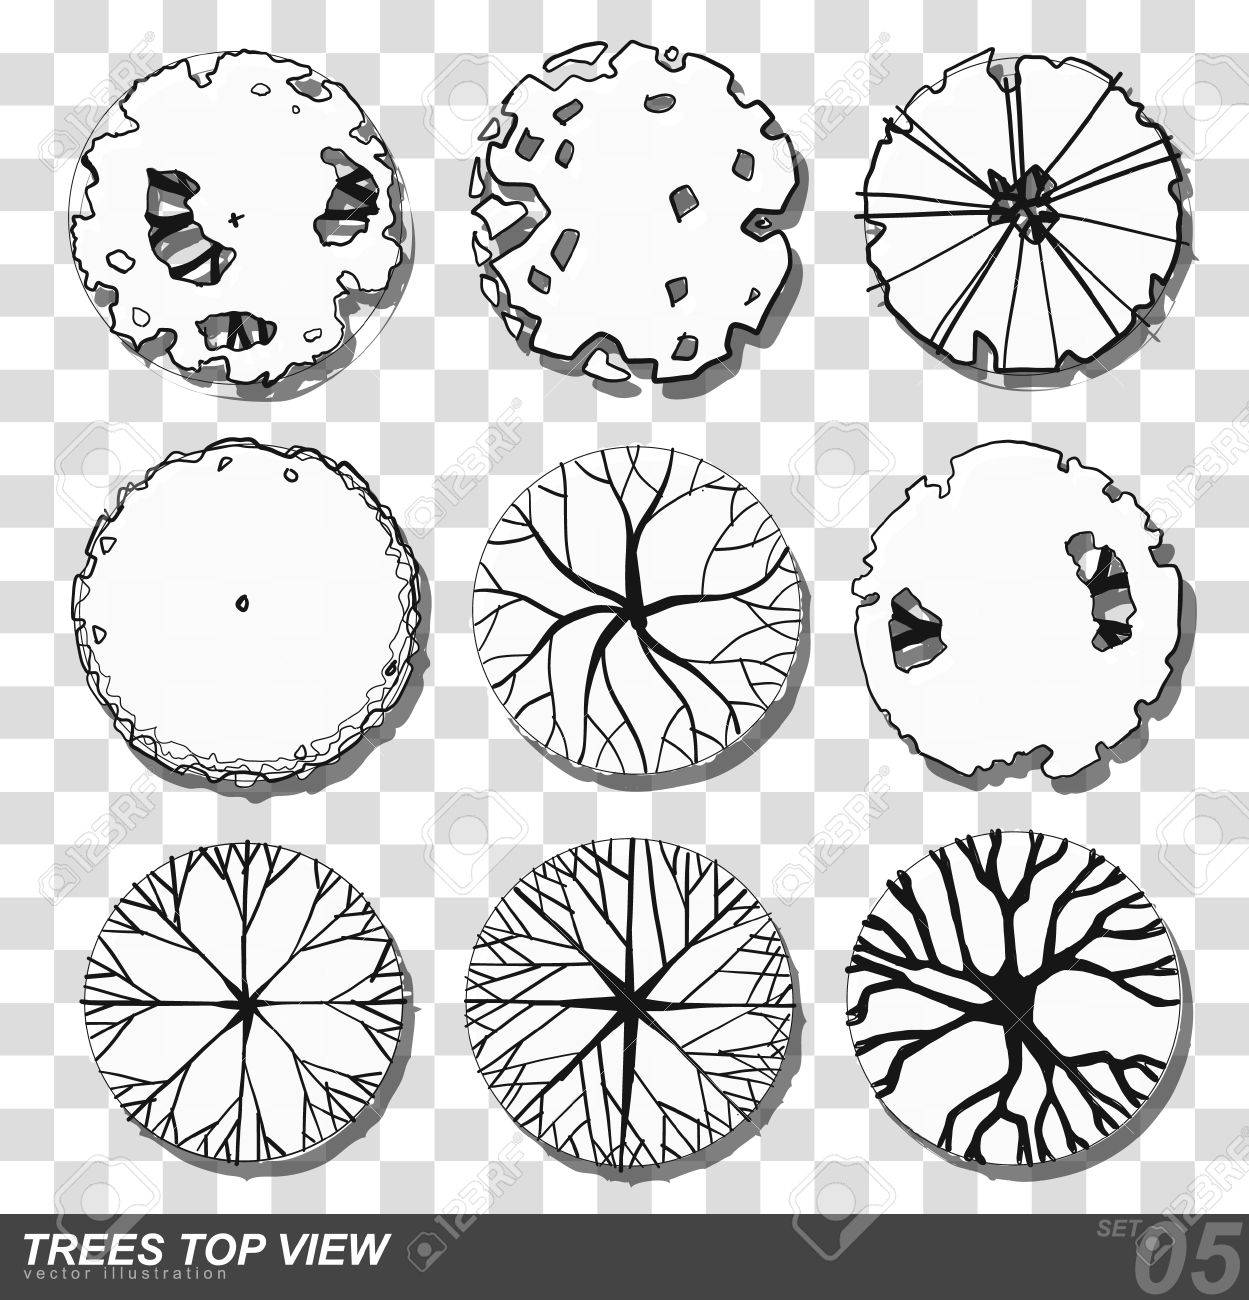 A set of Trees - top view  use in your landscape design  illustration